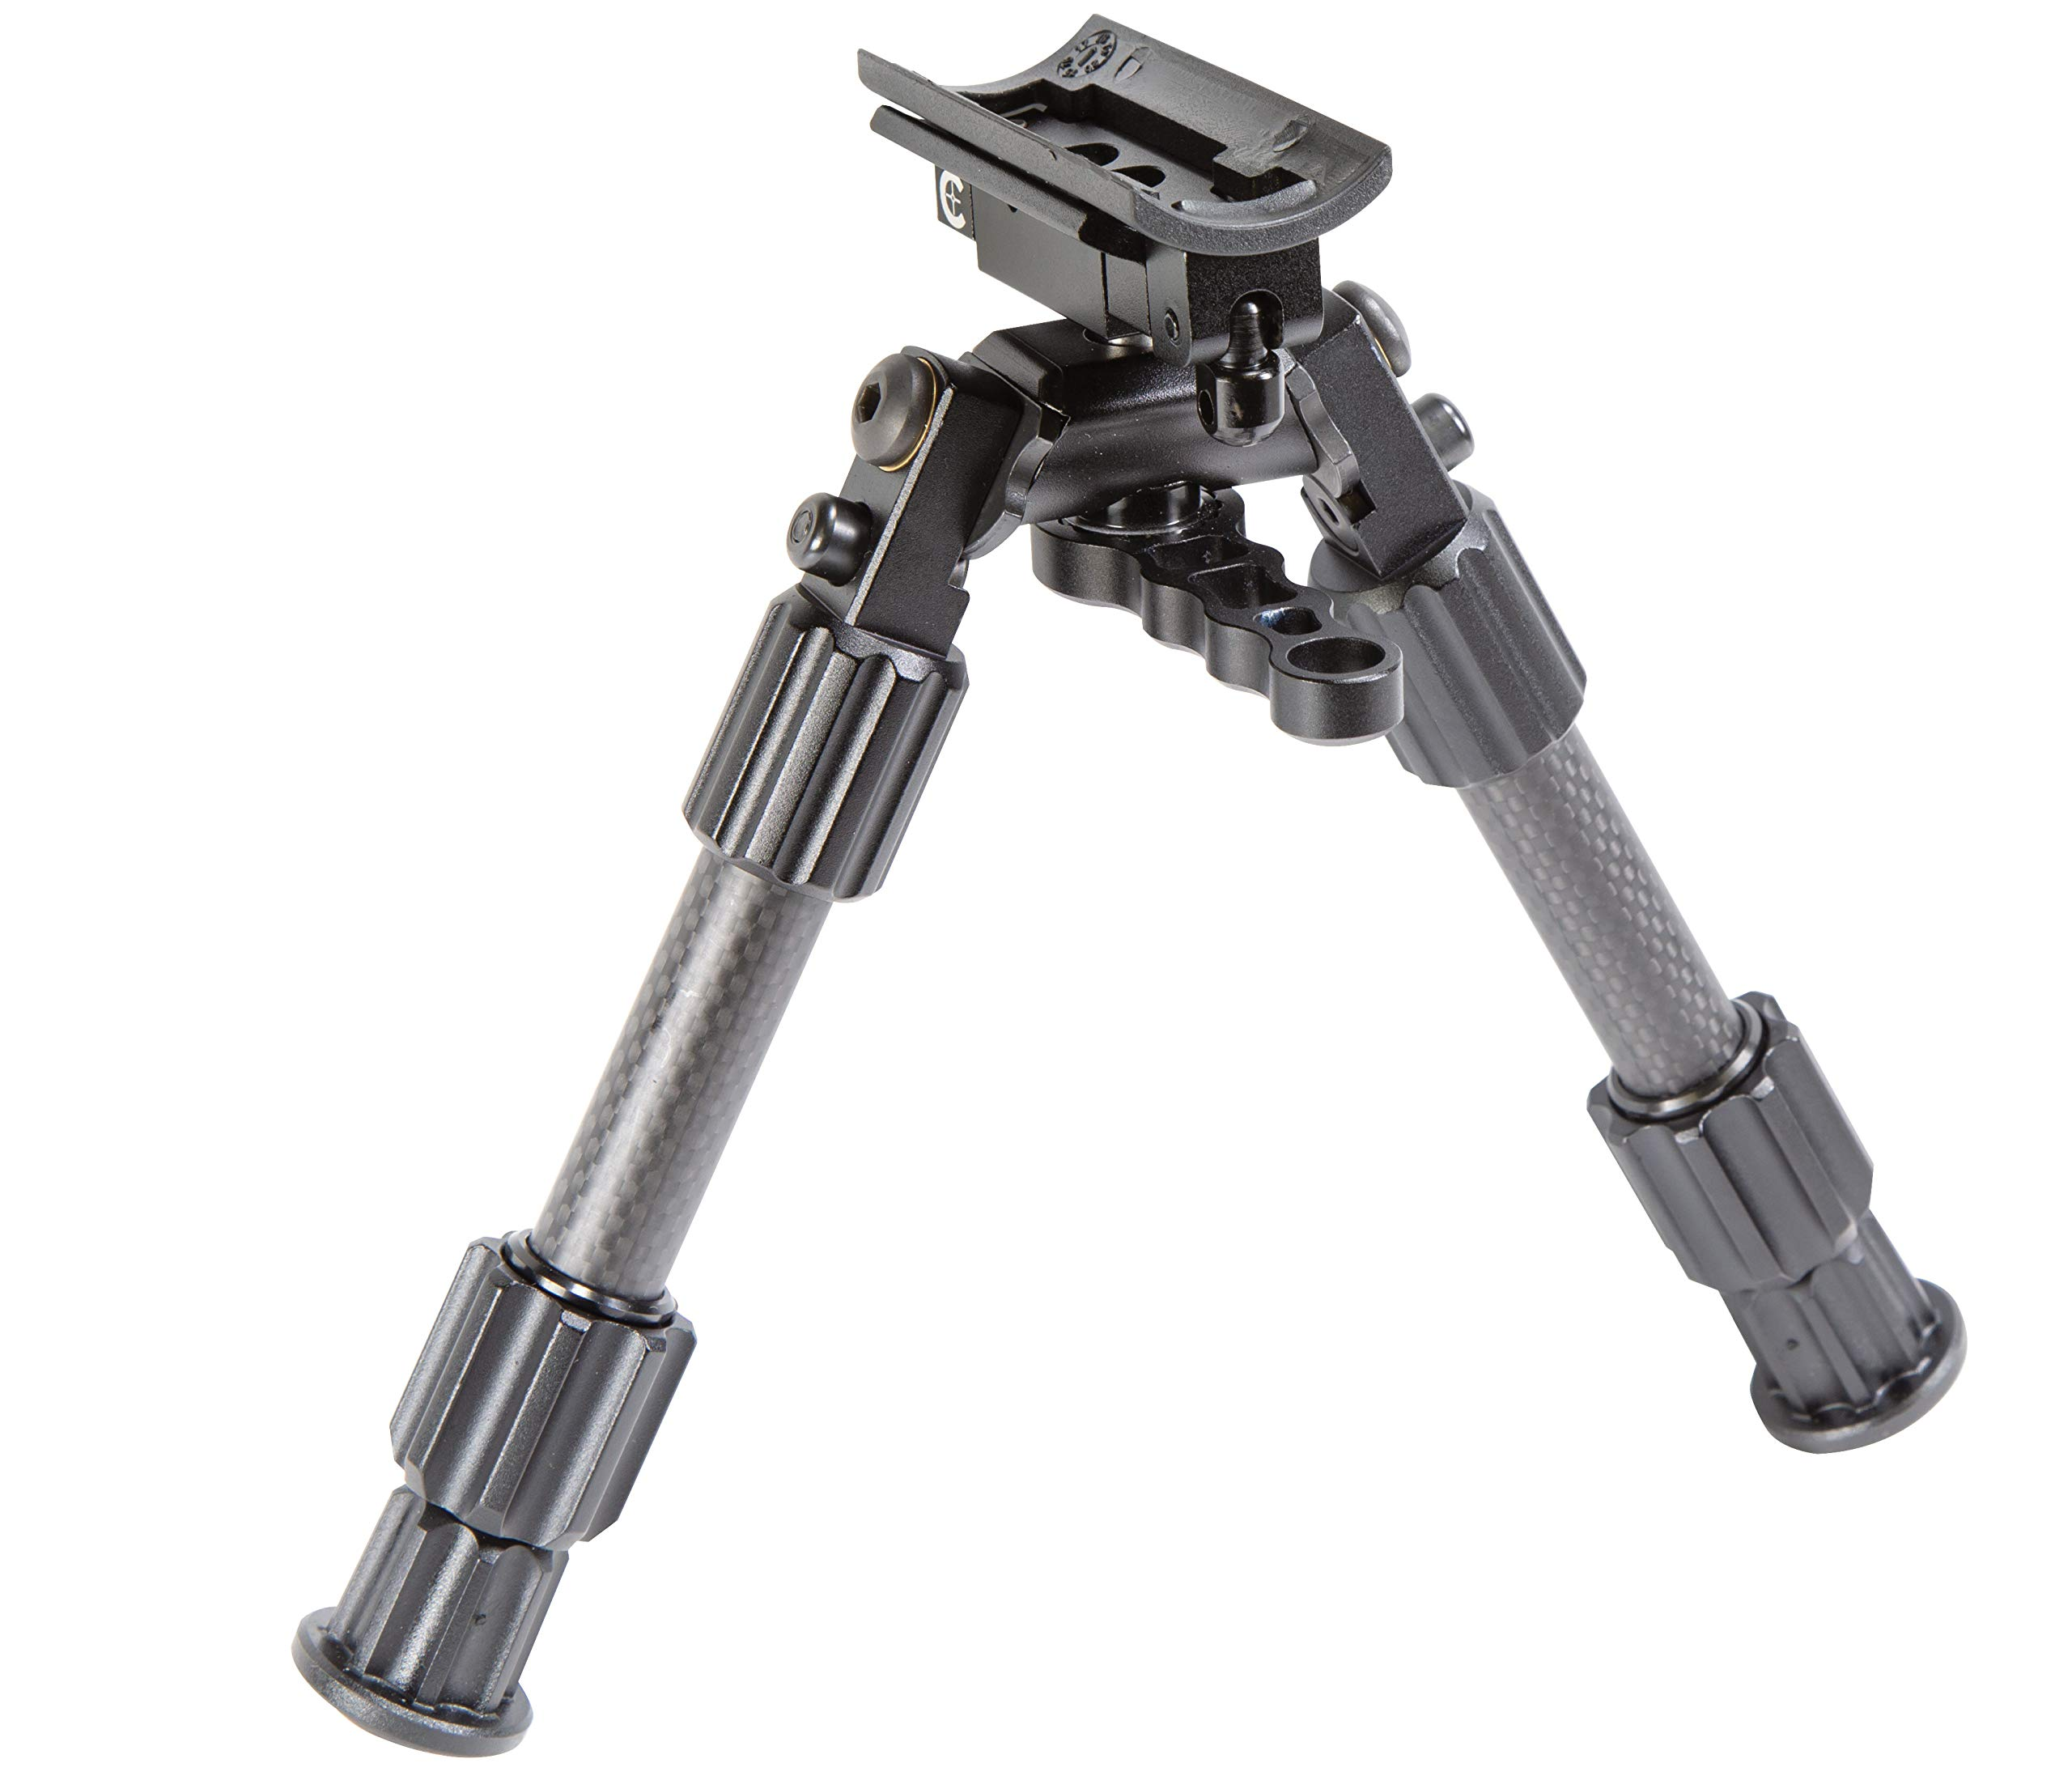 Caldwell Accumax Premium Carbon Fiber Sling Swivel Stud Bipod with Twist Lock Quick-Deployment Legs for Long Gun Rifle for Tactical Shooting Range and Sport, 9''-13'' by Caldwell